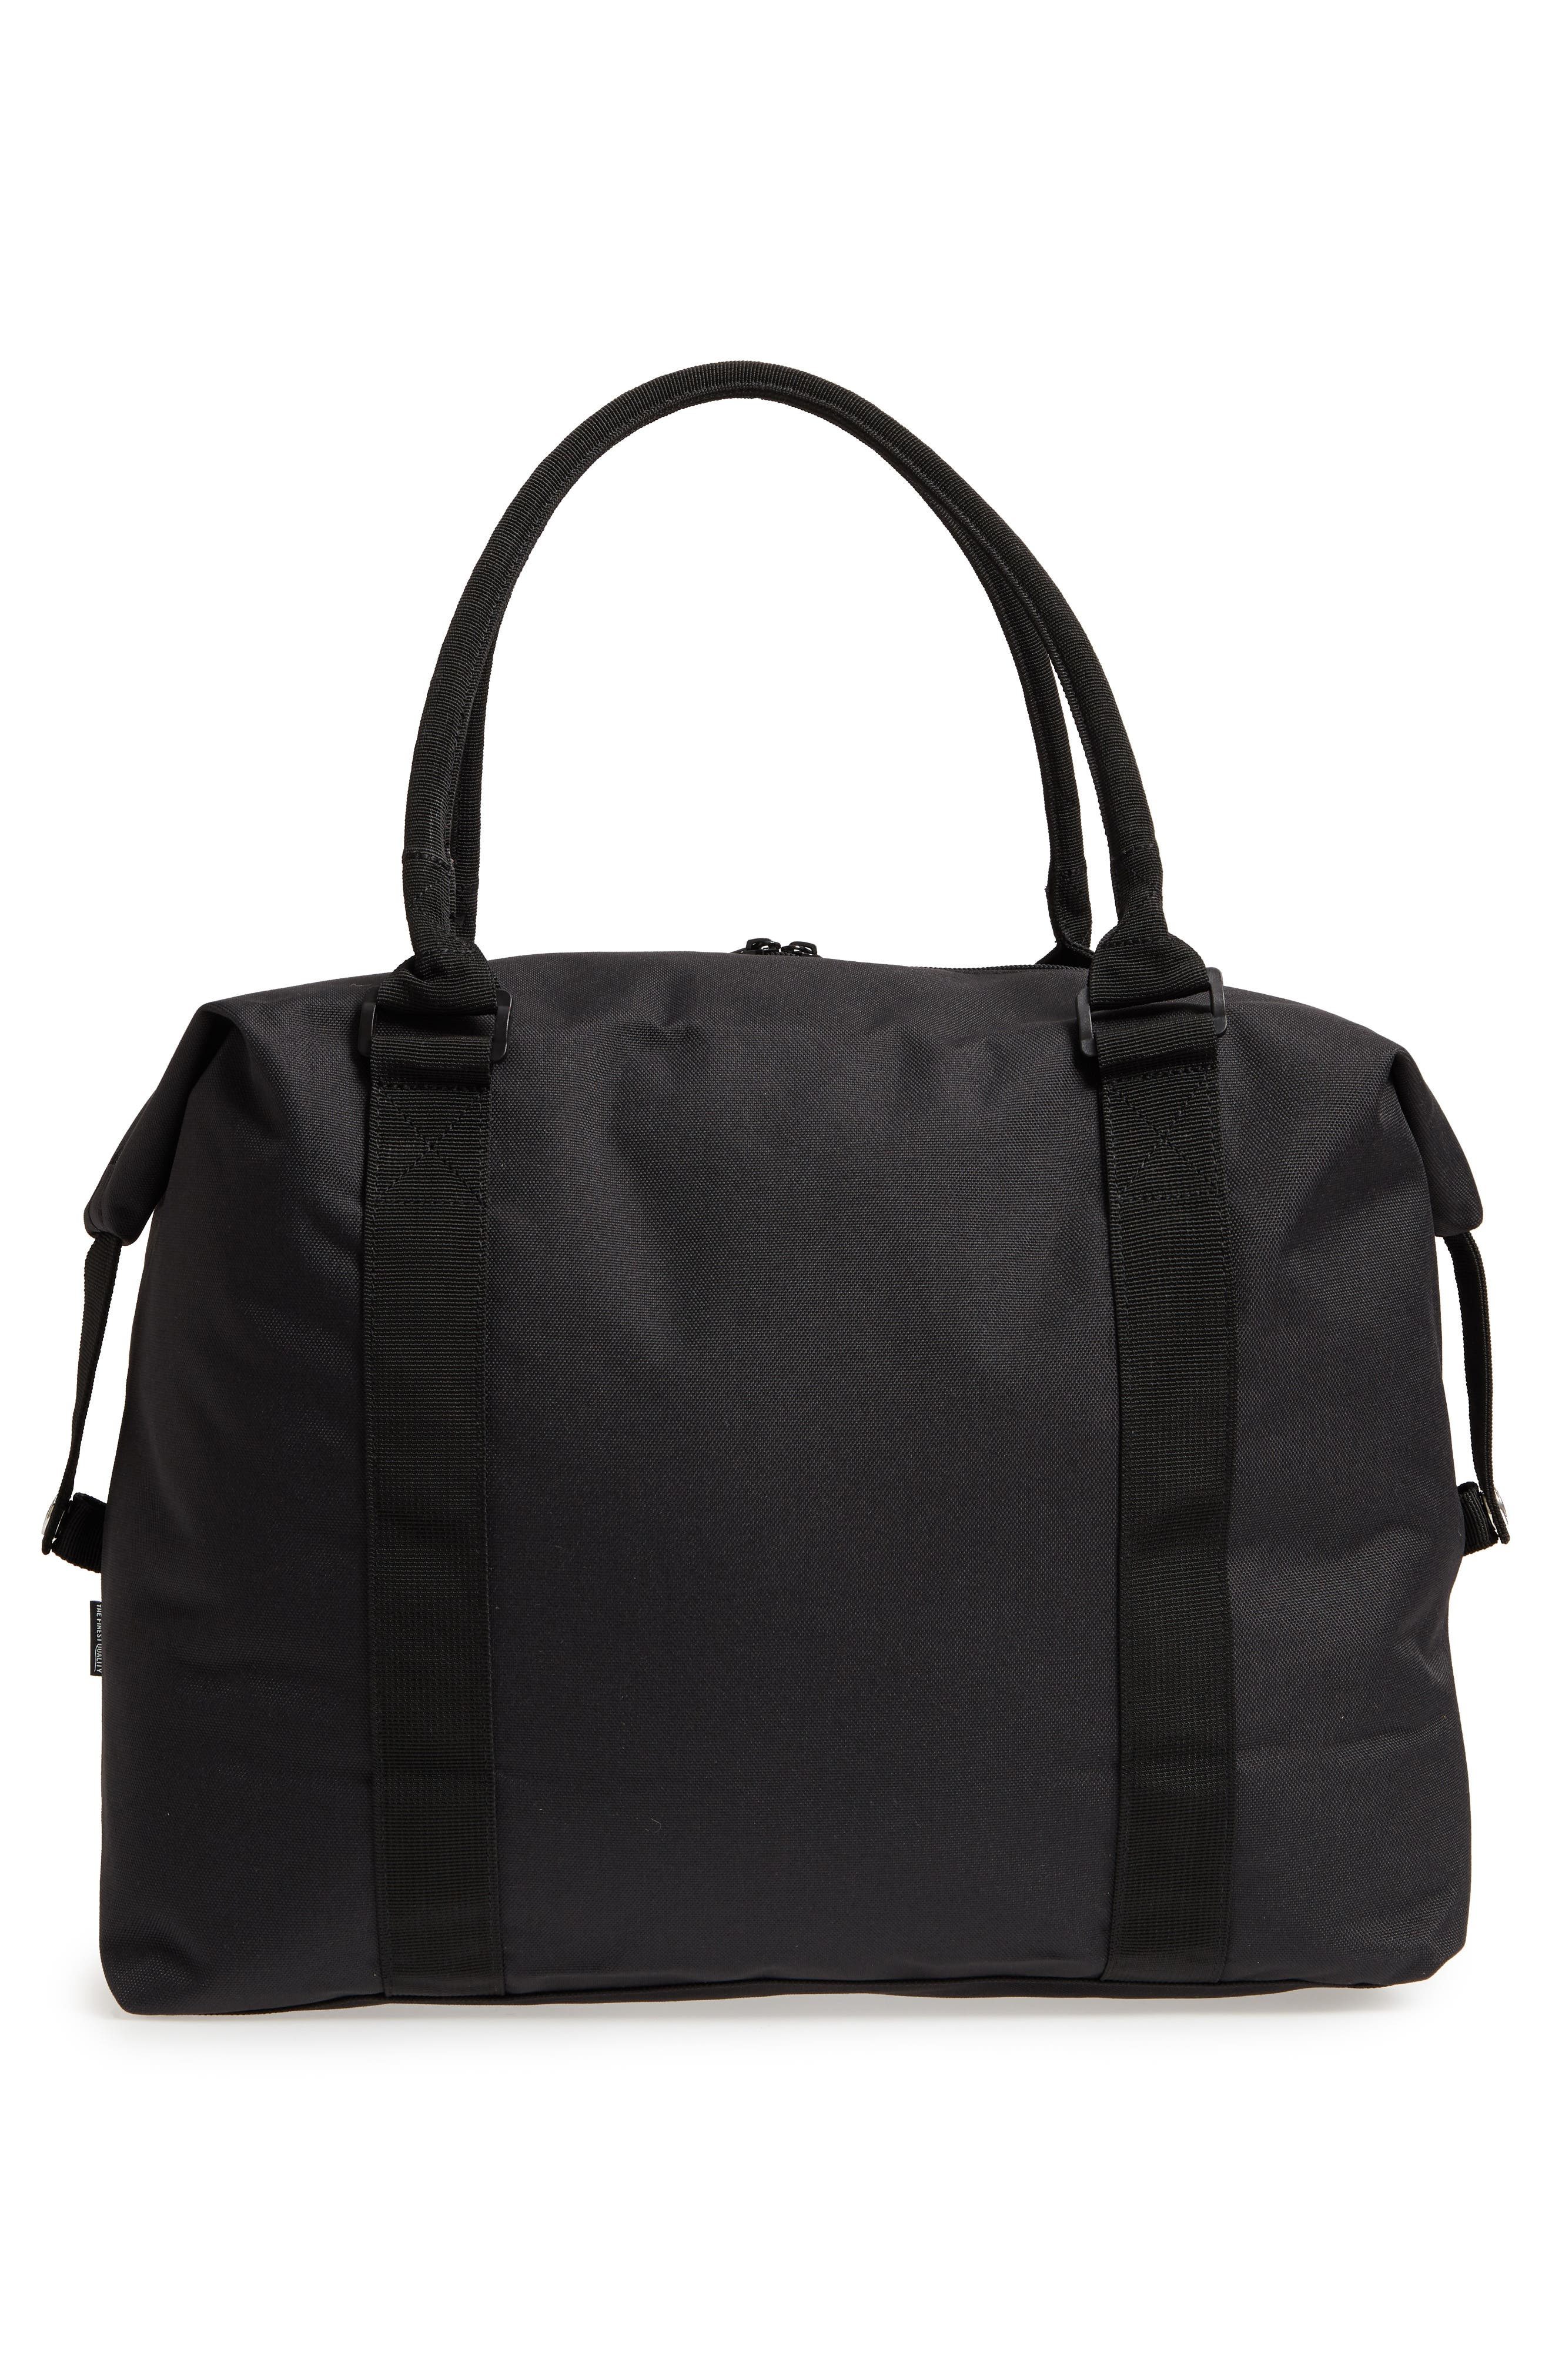 Strand Duffel Bag,                             Alternate thumbnail 3, color,                             001